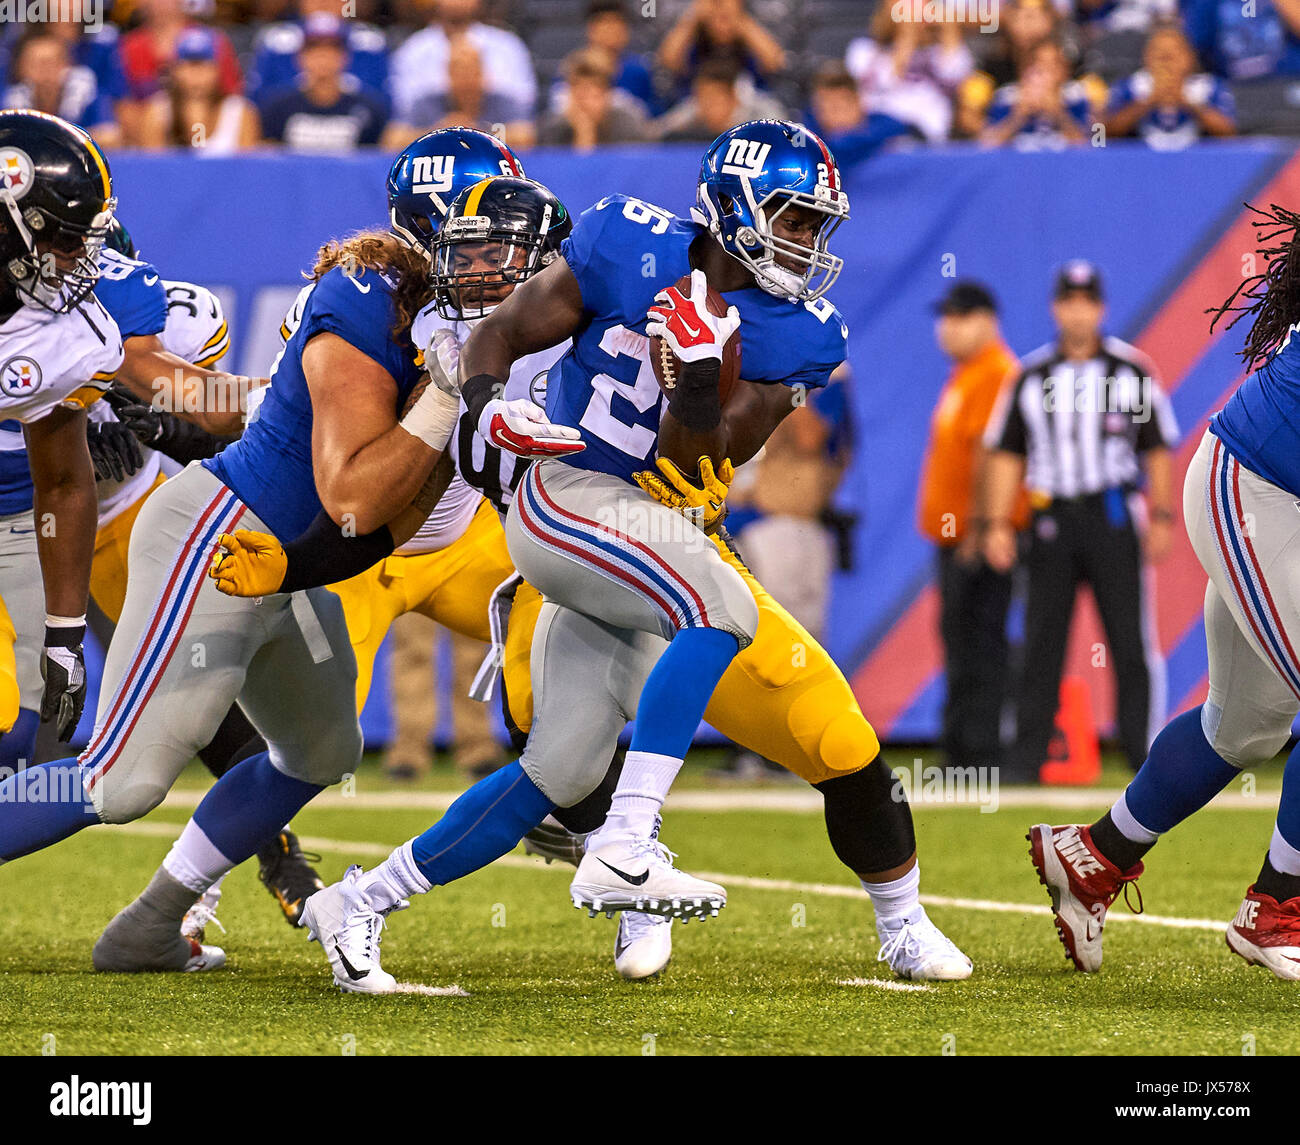 August 11, 2017 - East Rutherford, New Jersey, U.S. - Giants' running back Orleans Darkwa (26) tries to find running room around Steelers' defensive end Tyson Alualu (94) during NFL pre-season action between the Pittsburgh Steelers and the New York Giants at MetLife Stadium in East Rutherford, New Jersey. Duncan Williams/CSM - Stock Image